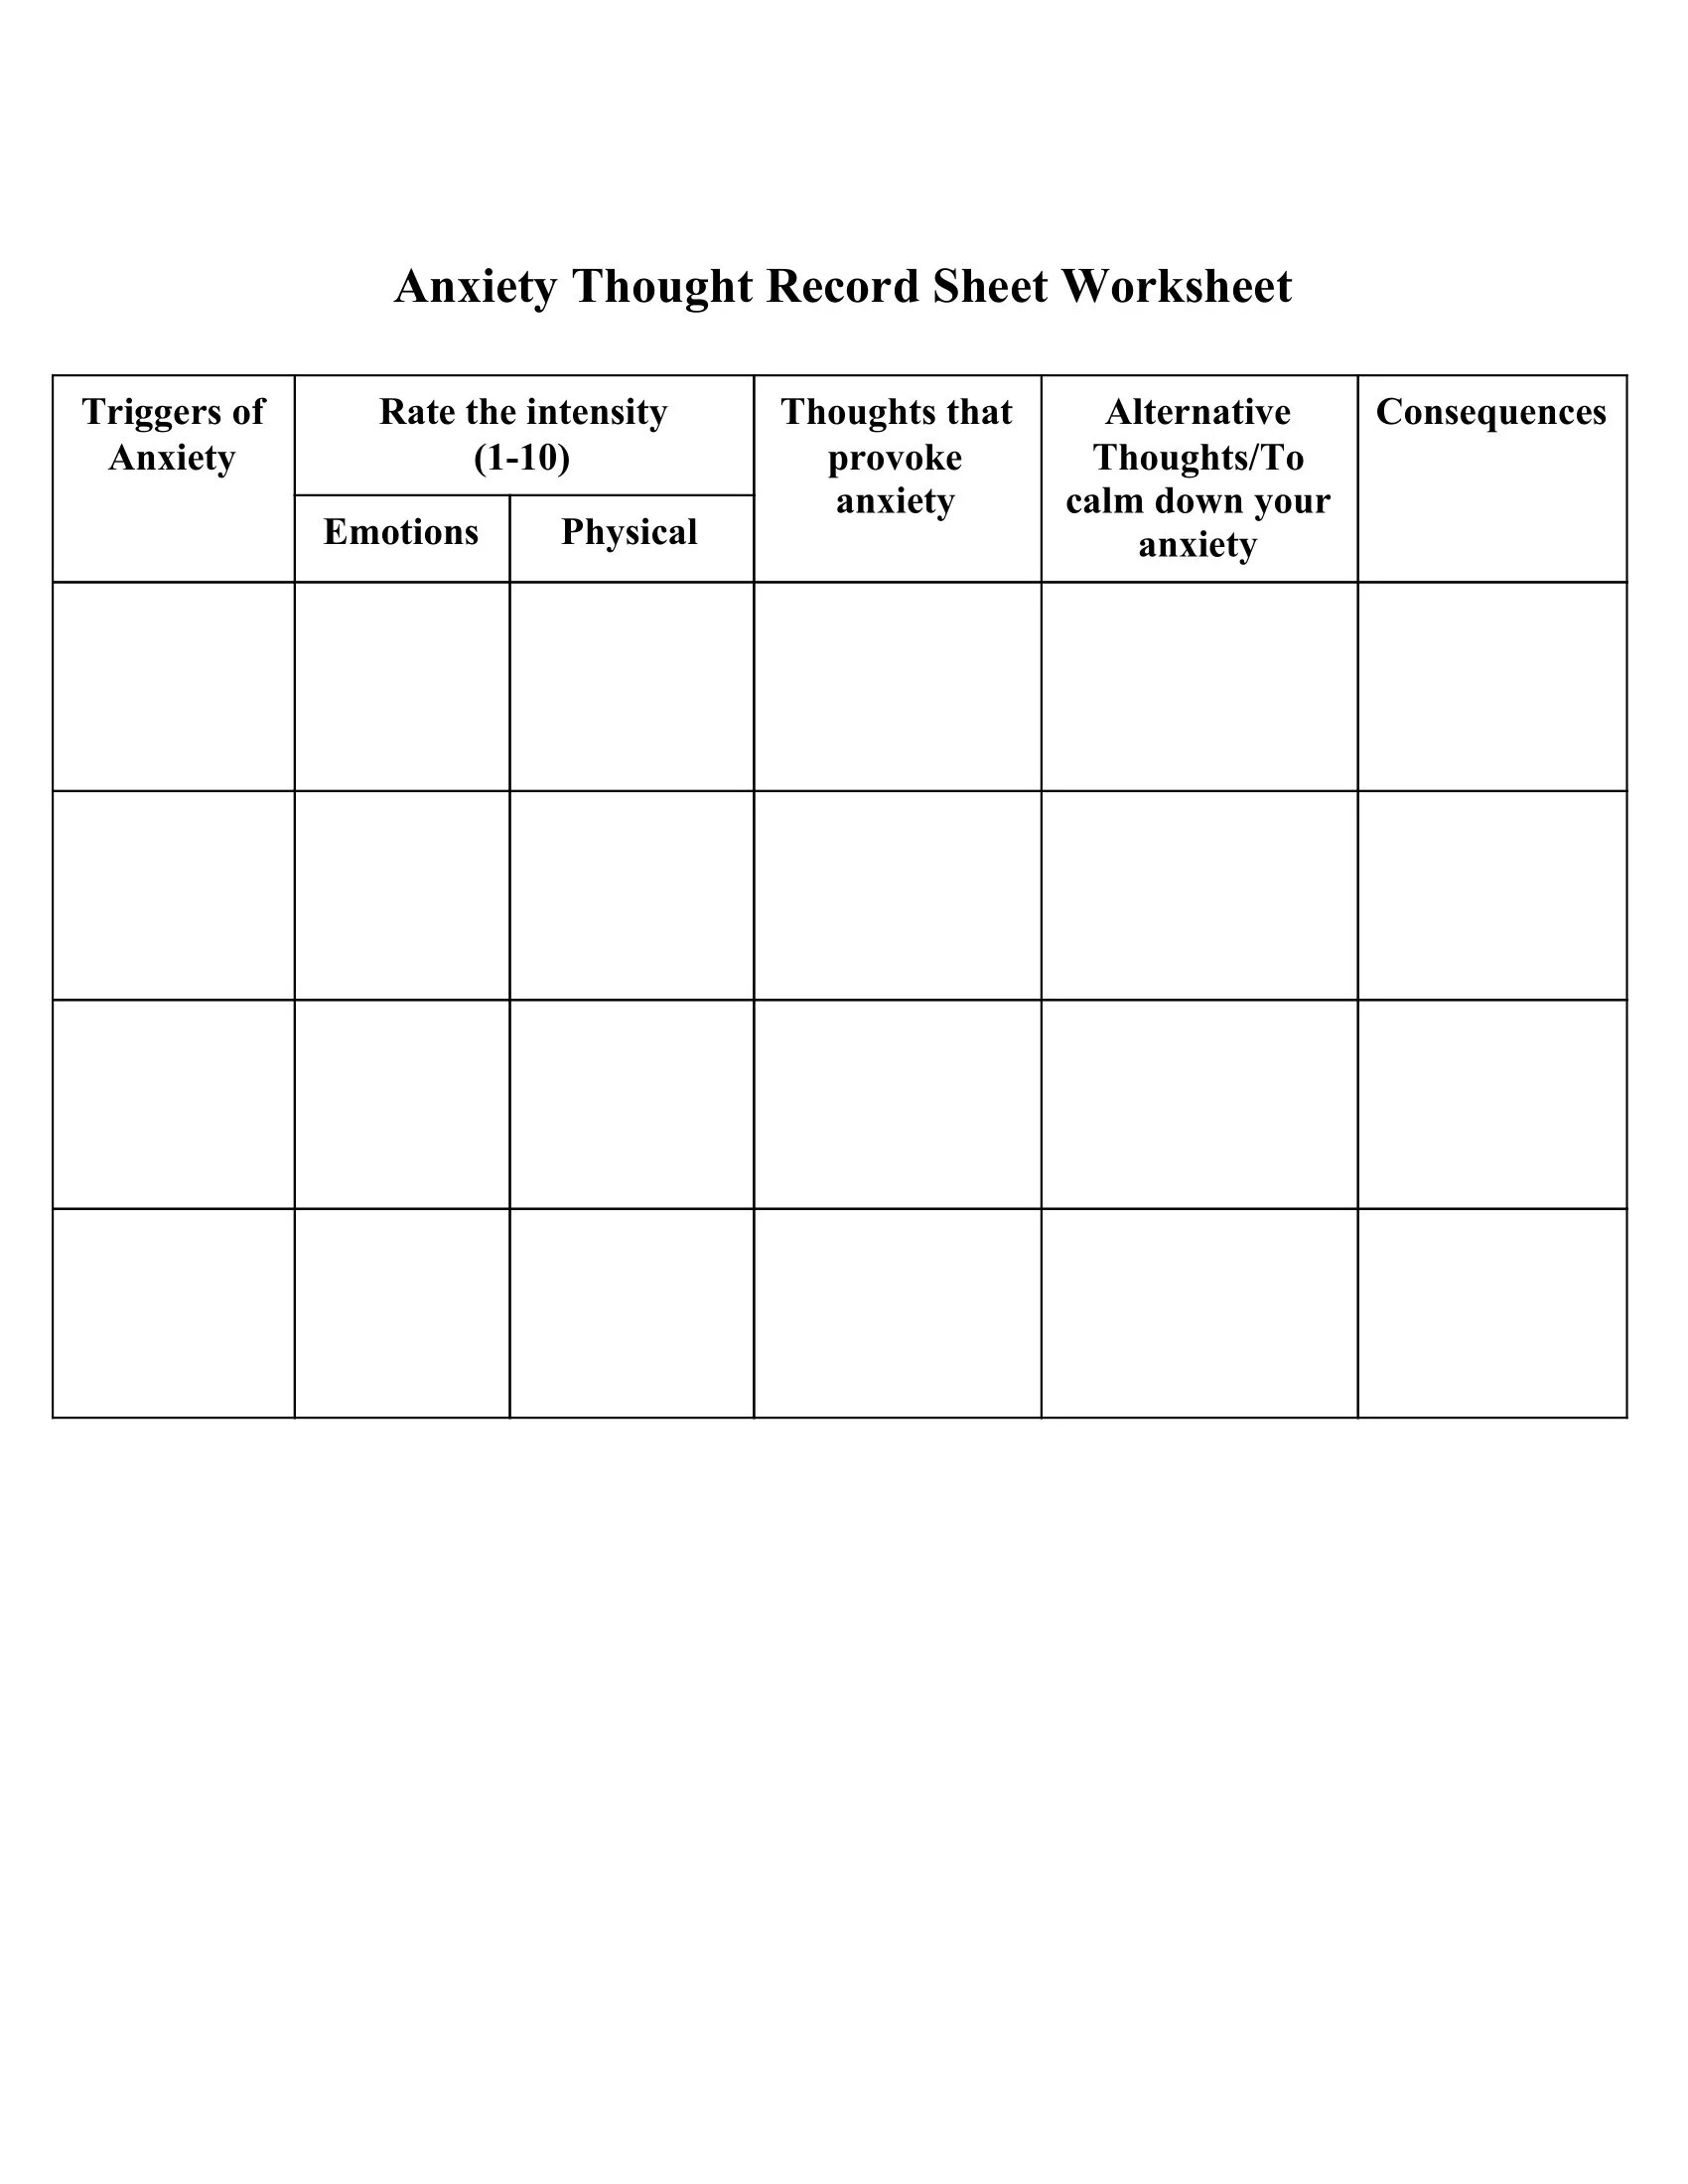 Anxiety Thought Record Sheet Worksheet